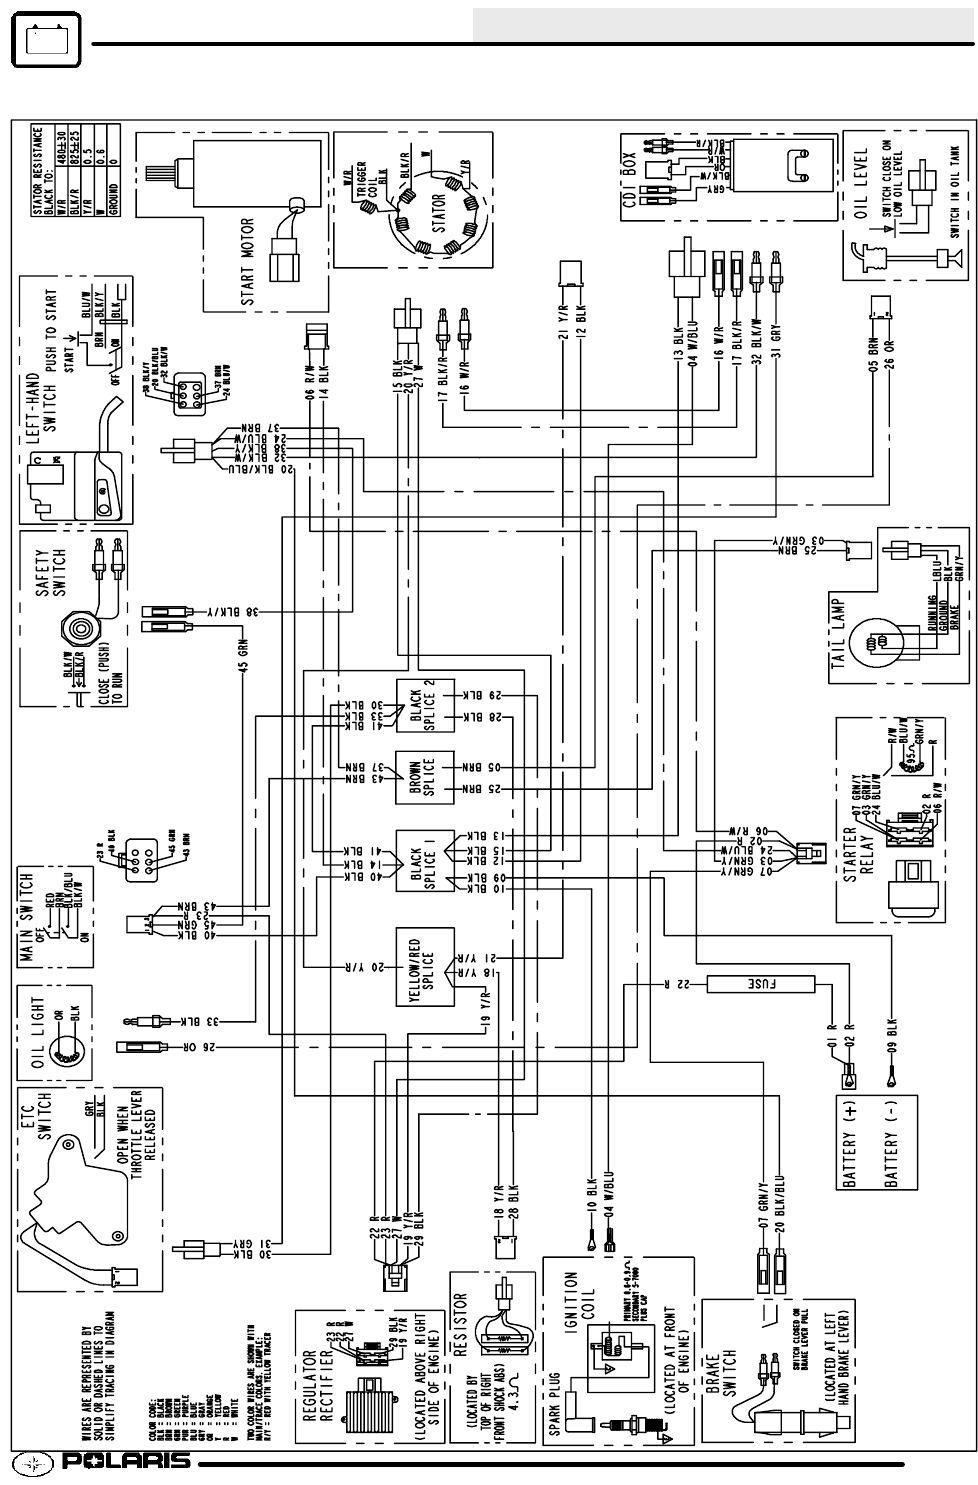 hight resolution of polaris predator wiring diagram wiring diagram name wiring diagram polaris ranger 800 wiring diagram polaris